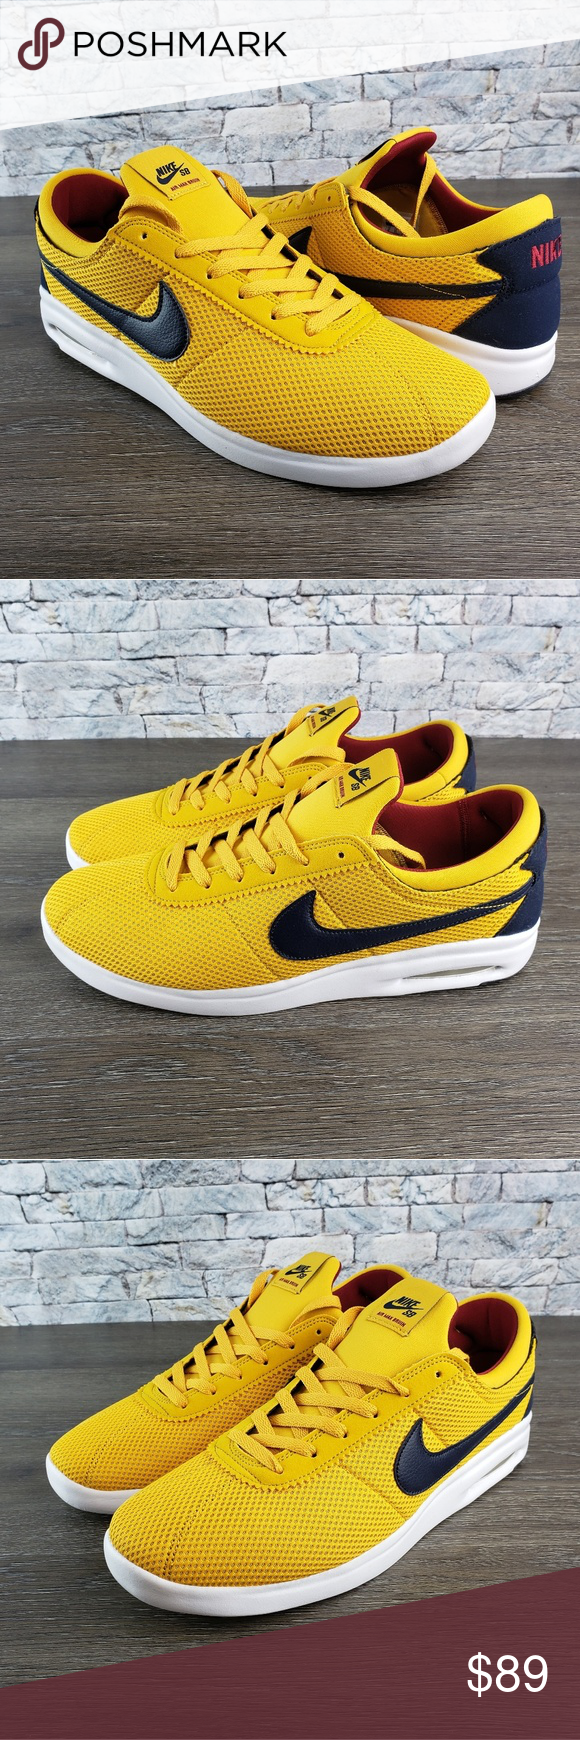 air max bruin vpr txt Turnschuhe low